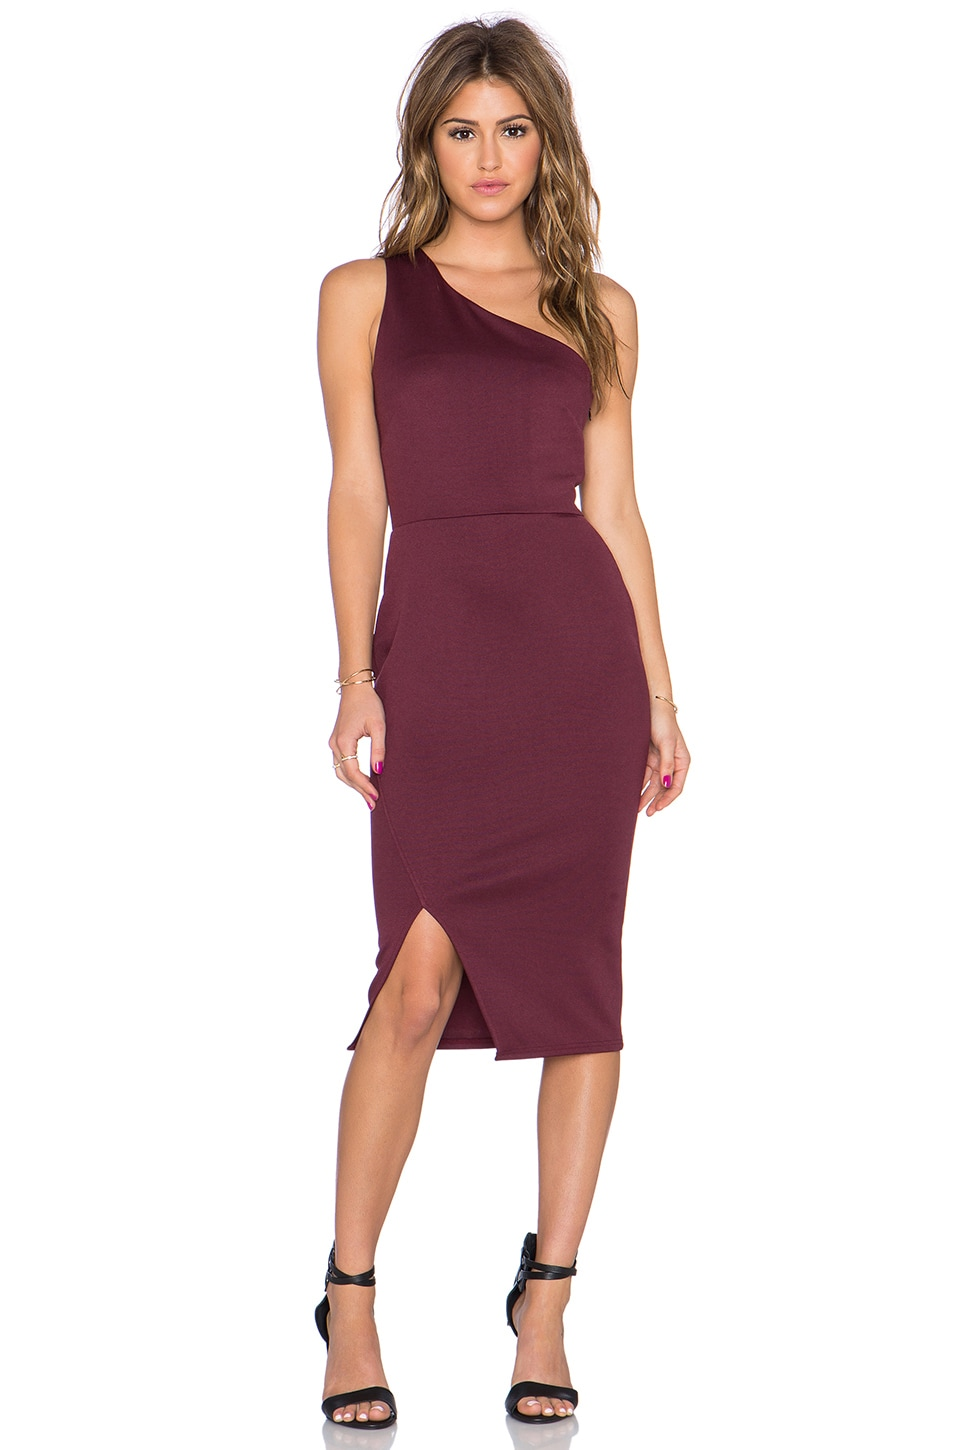 Twin Sister One Shoulder Bodycon Dress in Mauve